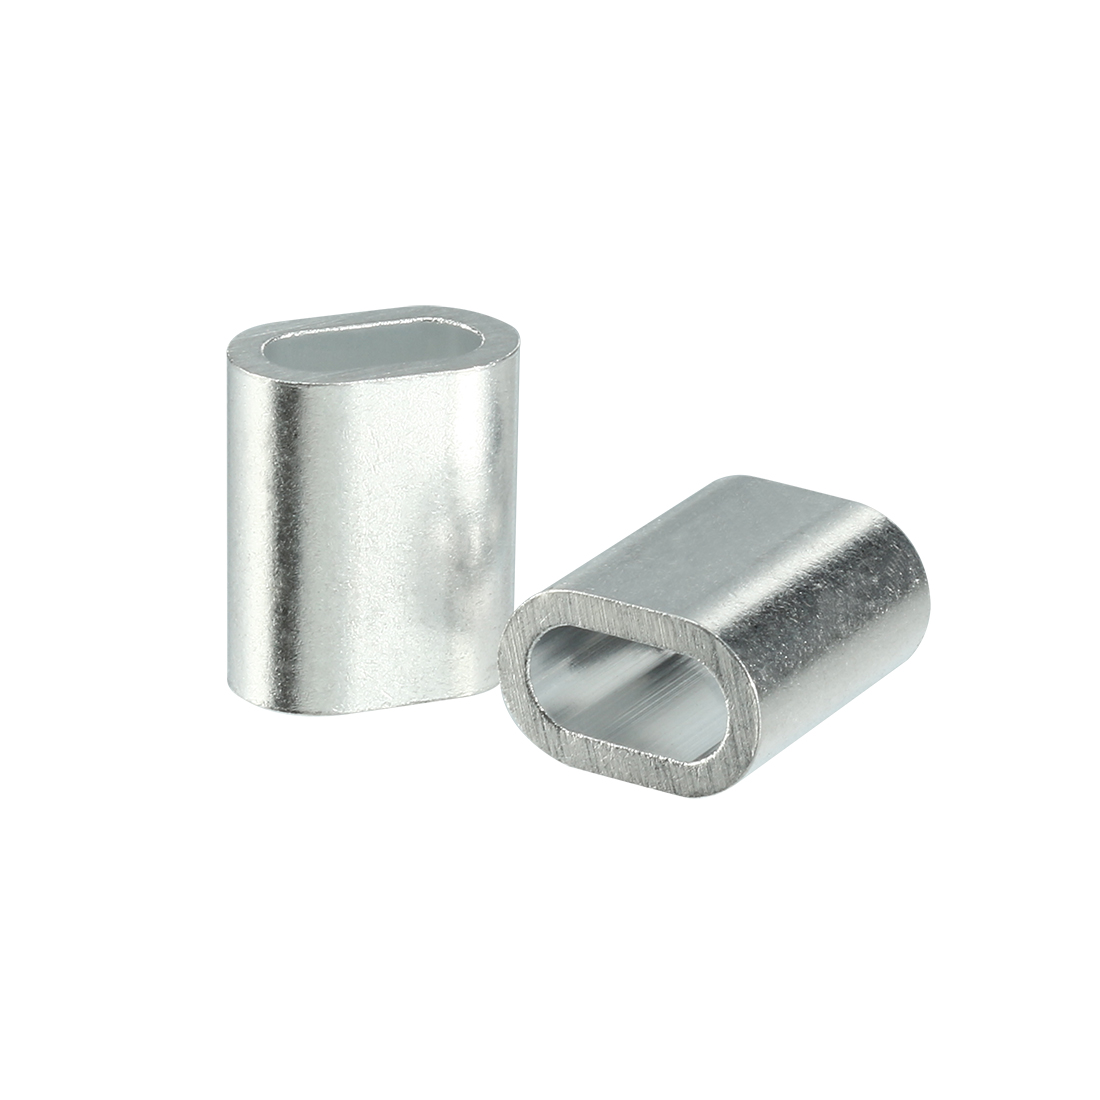 8mm 5/16-inch Cable Wire Rope Aluminum Oval Sleeves Clips Crimping Loops 10pcs - image 1 of 1